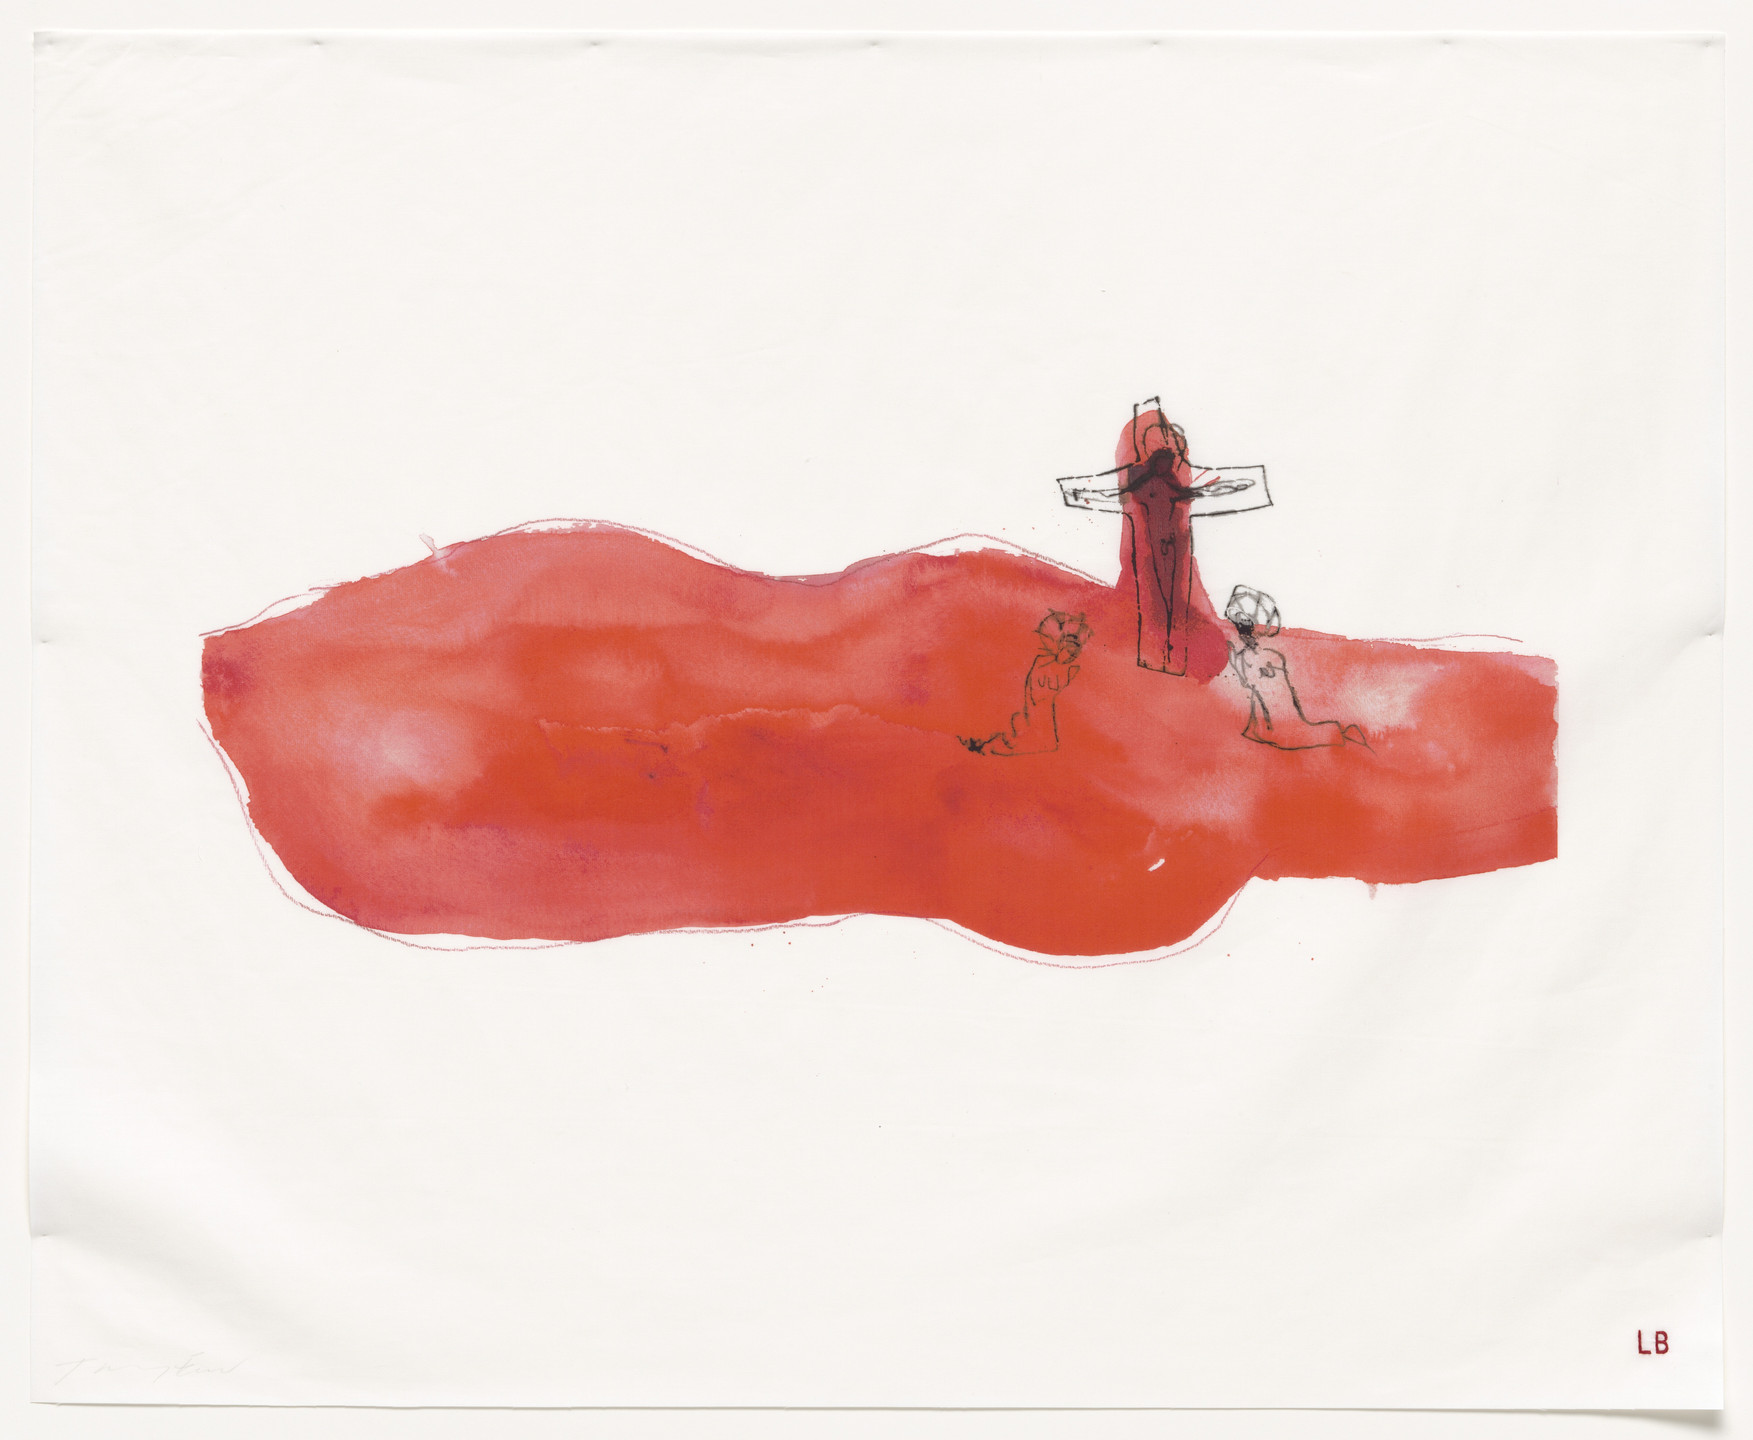 Louise Bourgeois, Tracey Emin. Come Unto Me, no. 5 of 16, from the series, Do Not Abandon Me. 2009-2010